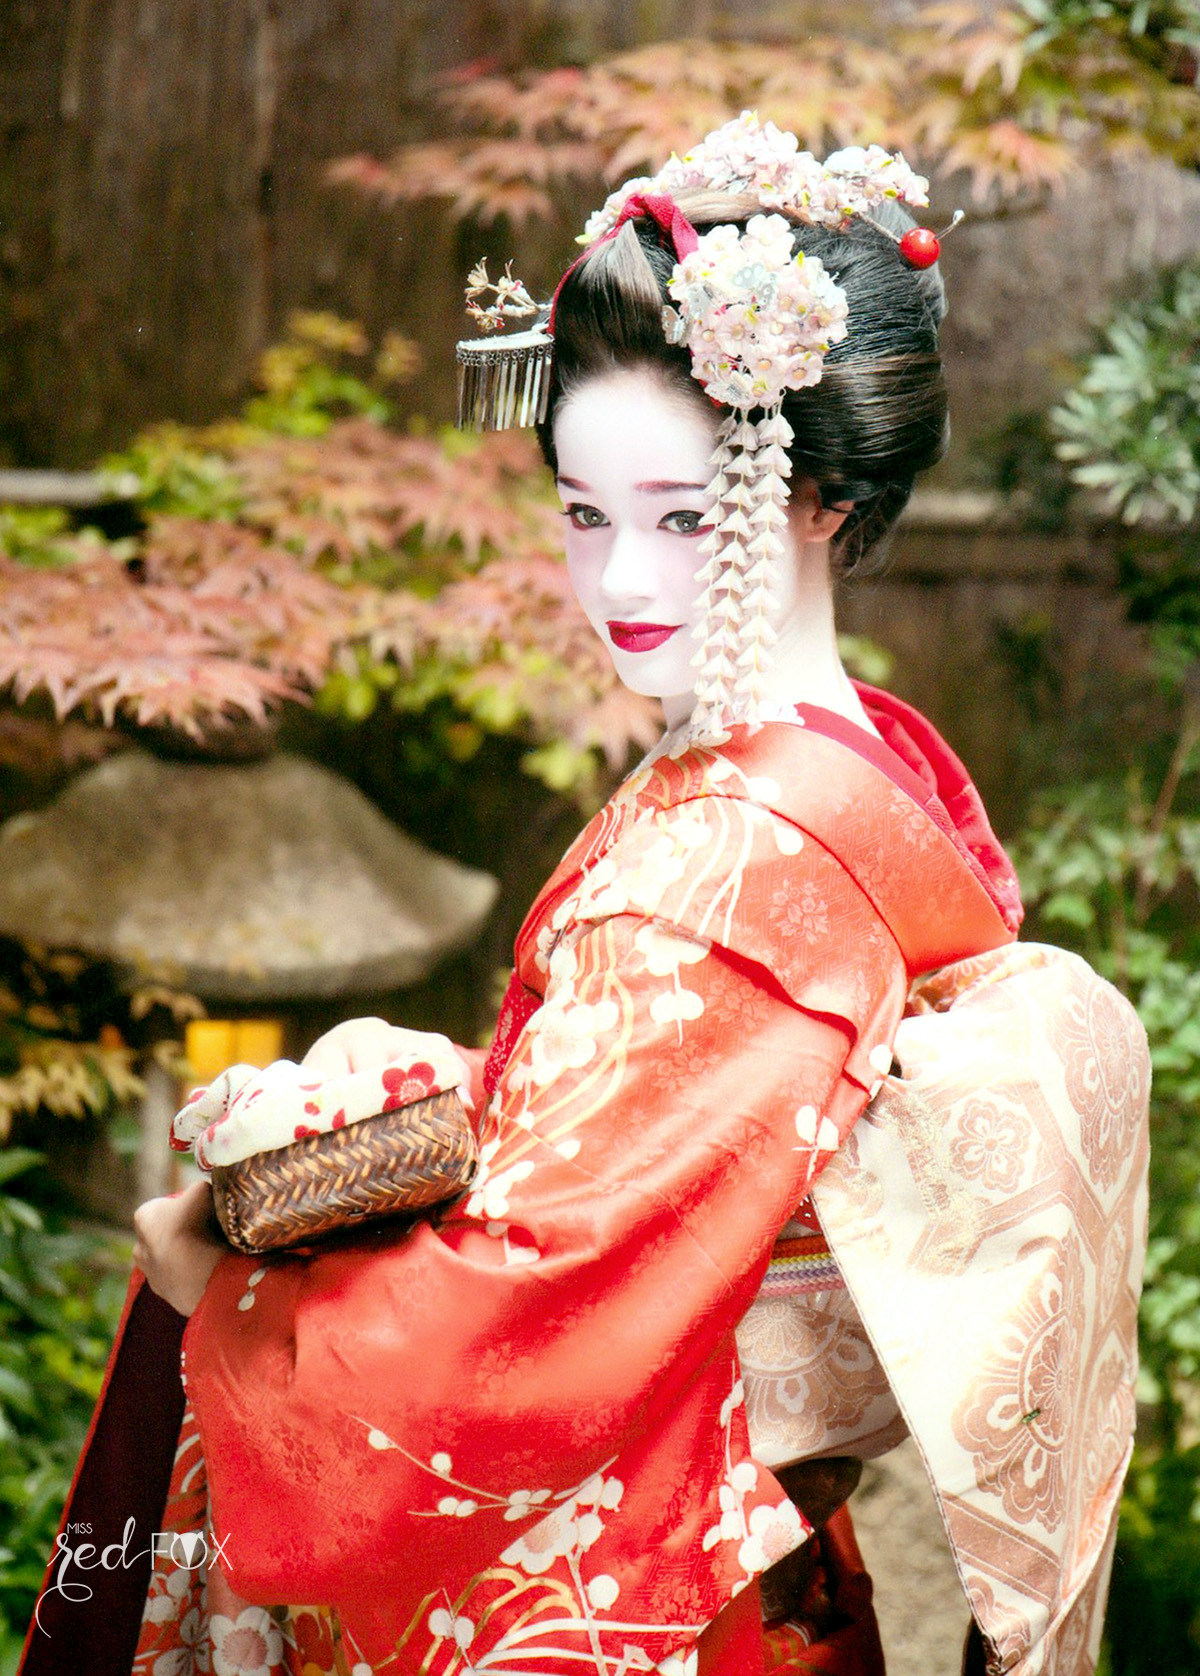 missredfox - Japan - Kyoto - 12